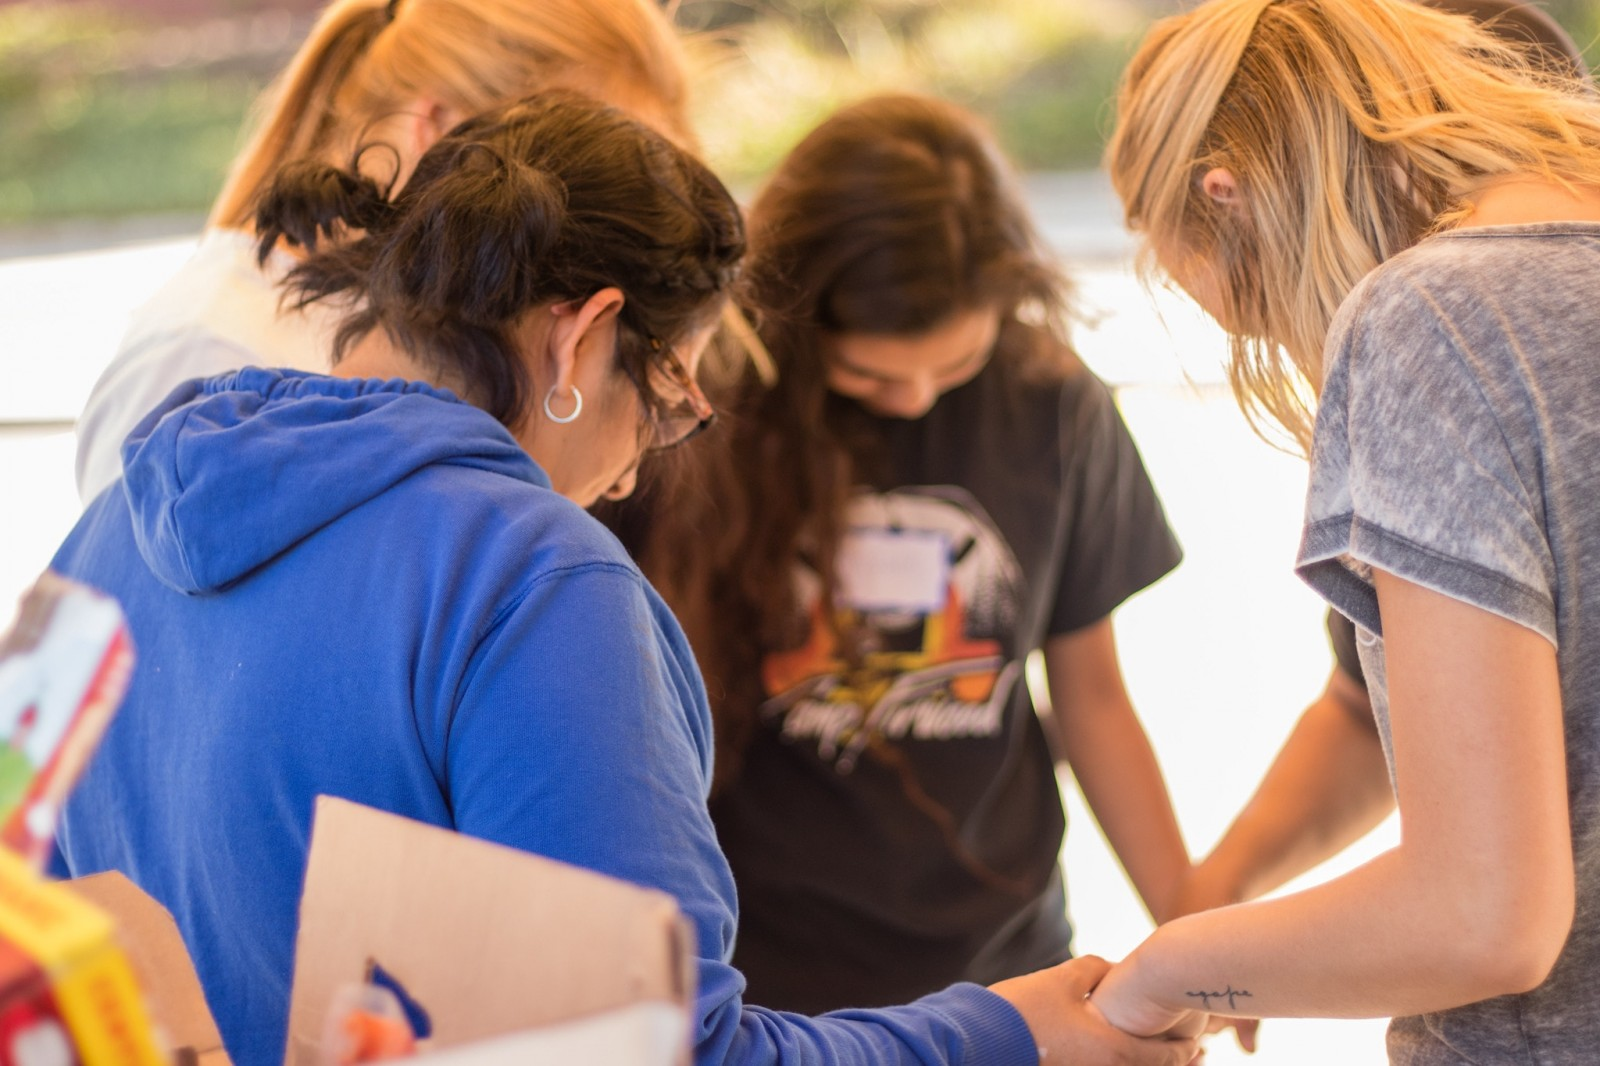 APU's Christian ministries minor equips students for practical, relational ministry.